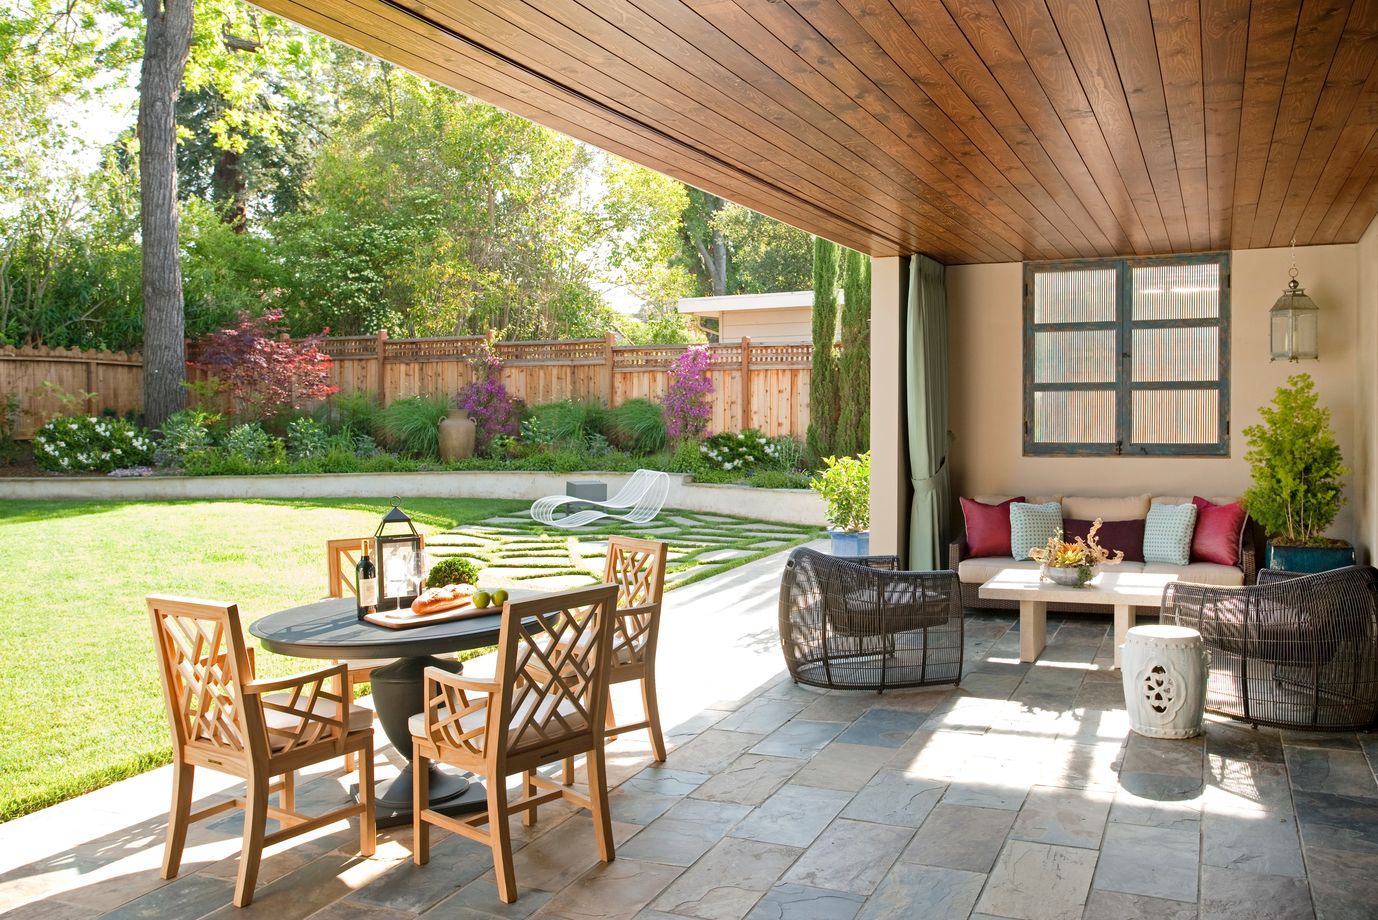 Outdoor Living Designs : Outdoor Living: 8 Ideas To Get The Most Out Of Your Space